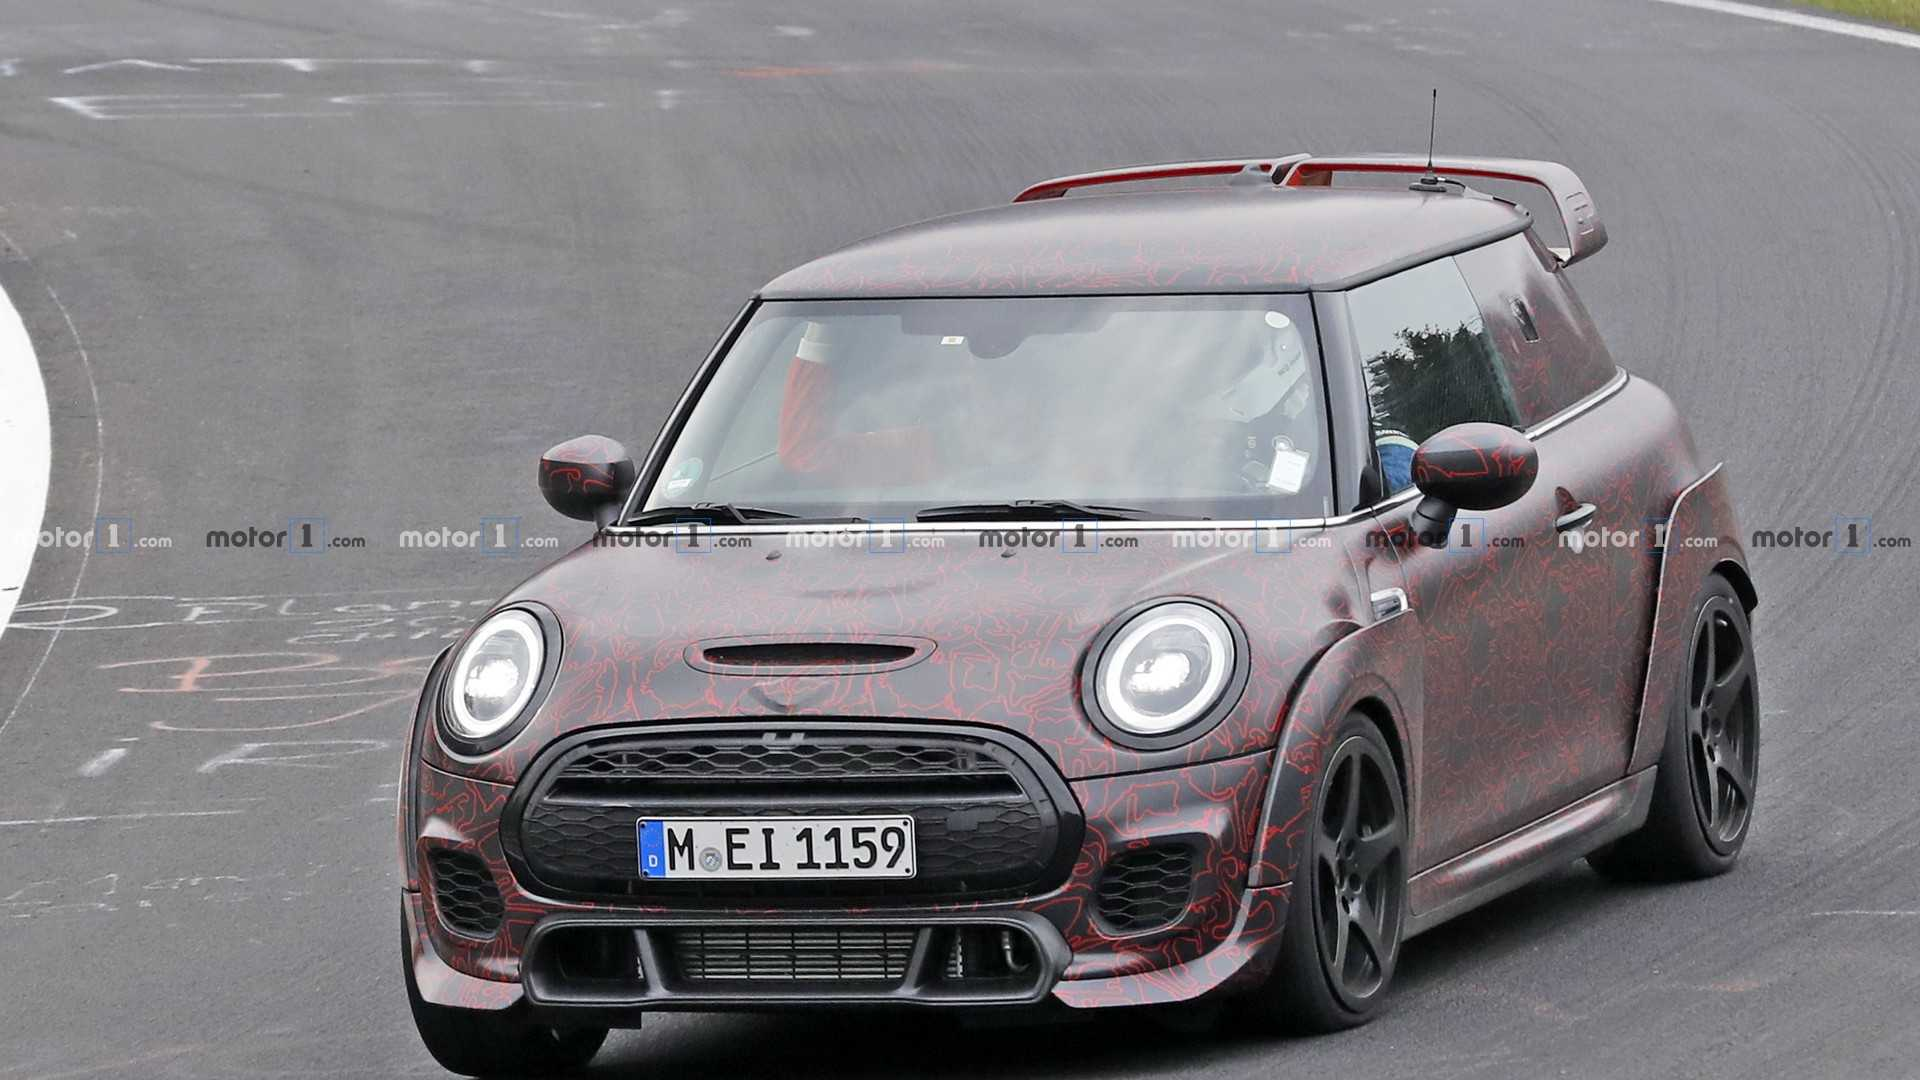 At the annual International Motor Show opening in Frankfurt, Germany, on September 12, 2019, the British carmaker will introduce the new Mini John Cooper Works (JCW) GP